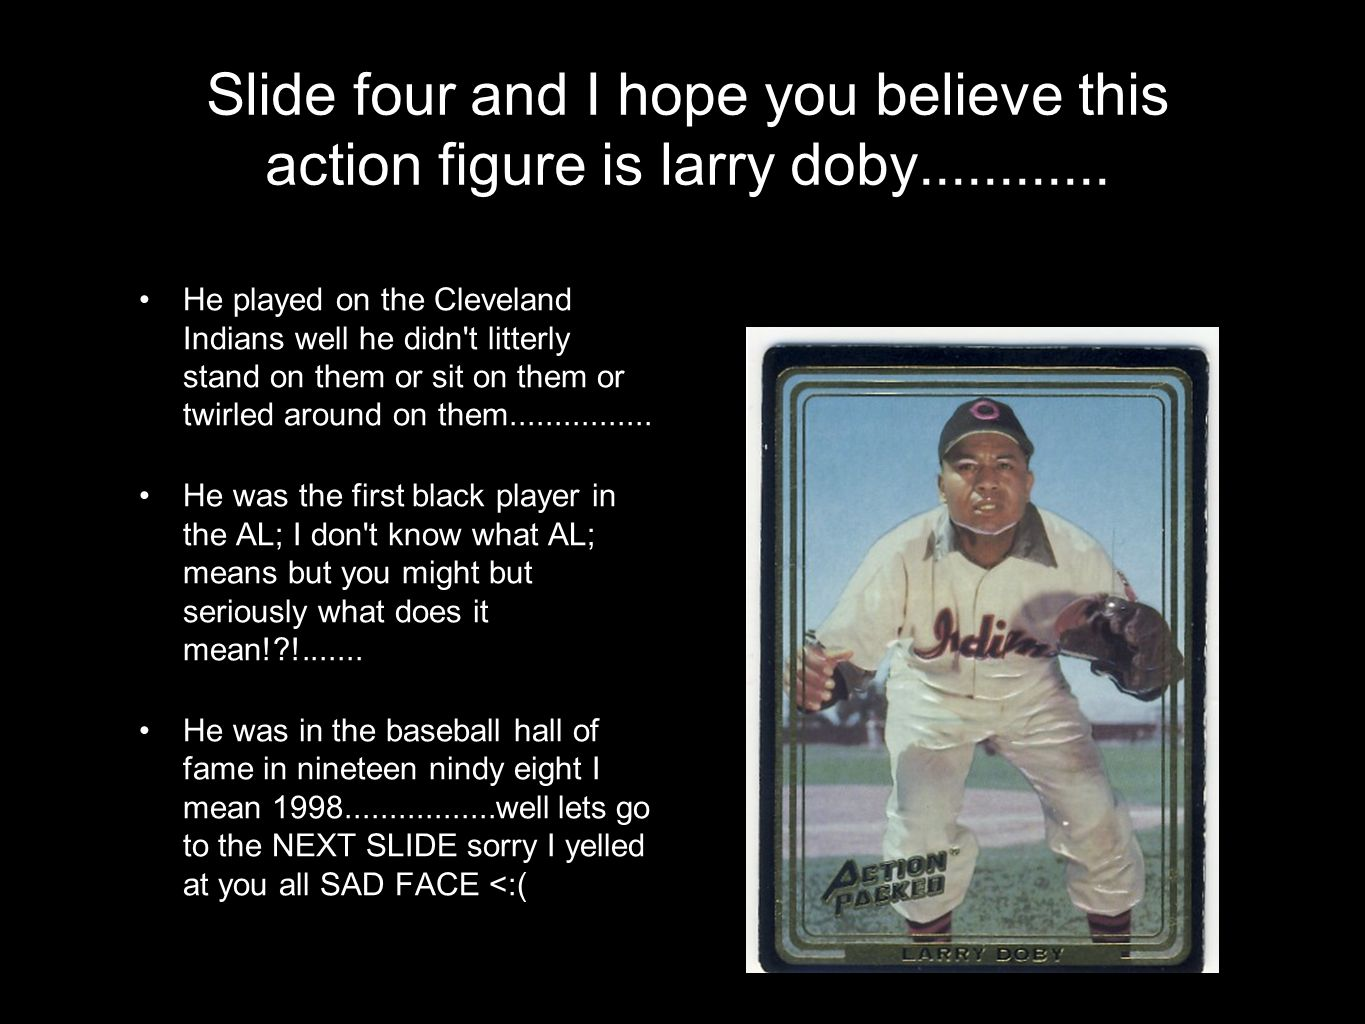 Slide four and I hope you believe this action figure is larry doby............